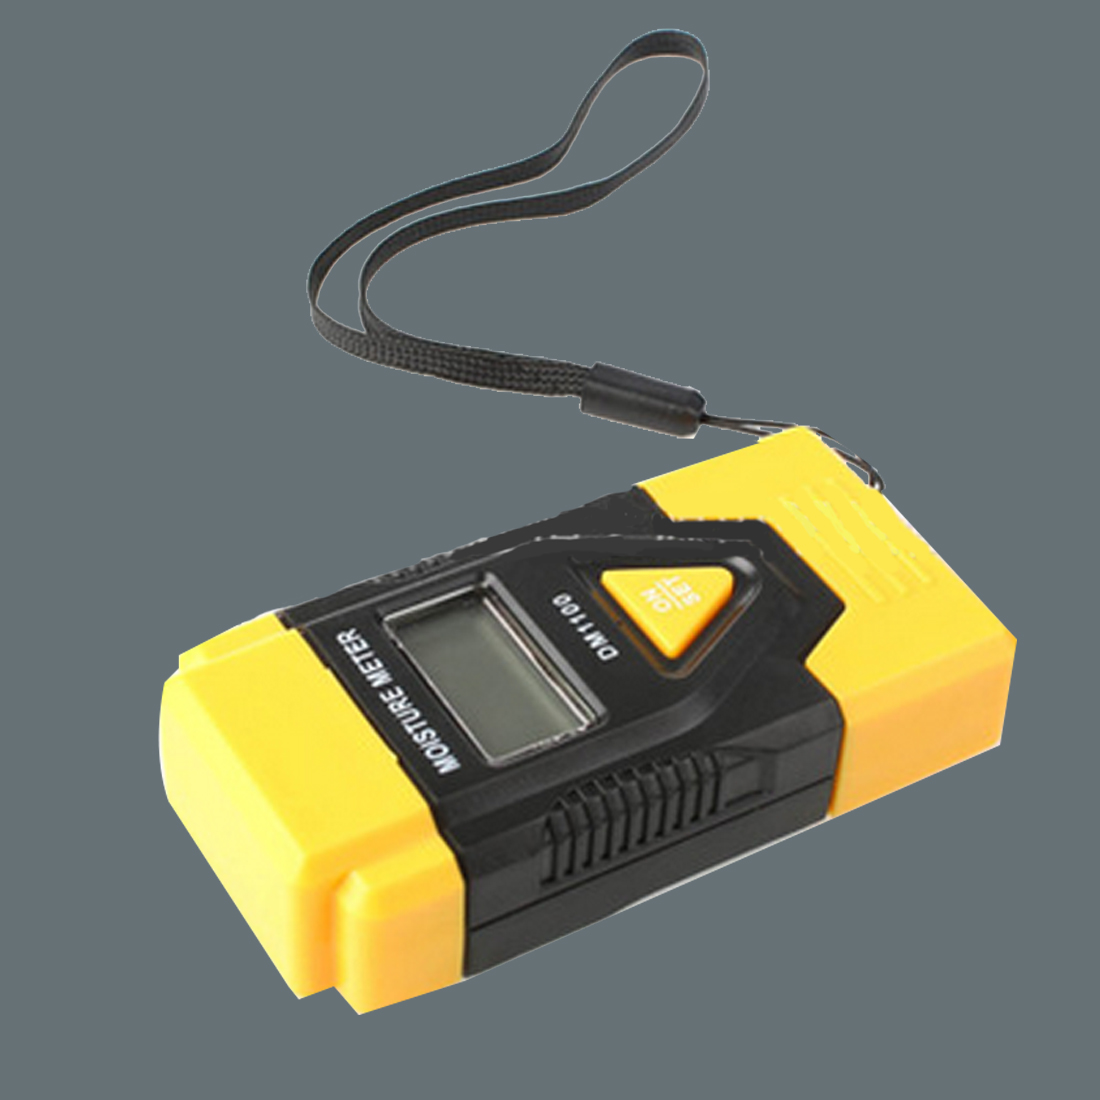 Digital Moisture Meter 3 in 1 Wood/ Building Material Sawn Timber Hardened Materials And Ambient TemperatureDigital Moisture Meter 3 in 1 Wood/ Building Material Sawn Timber Hardened Materials And Ambient Temperature